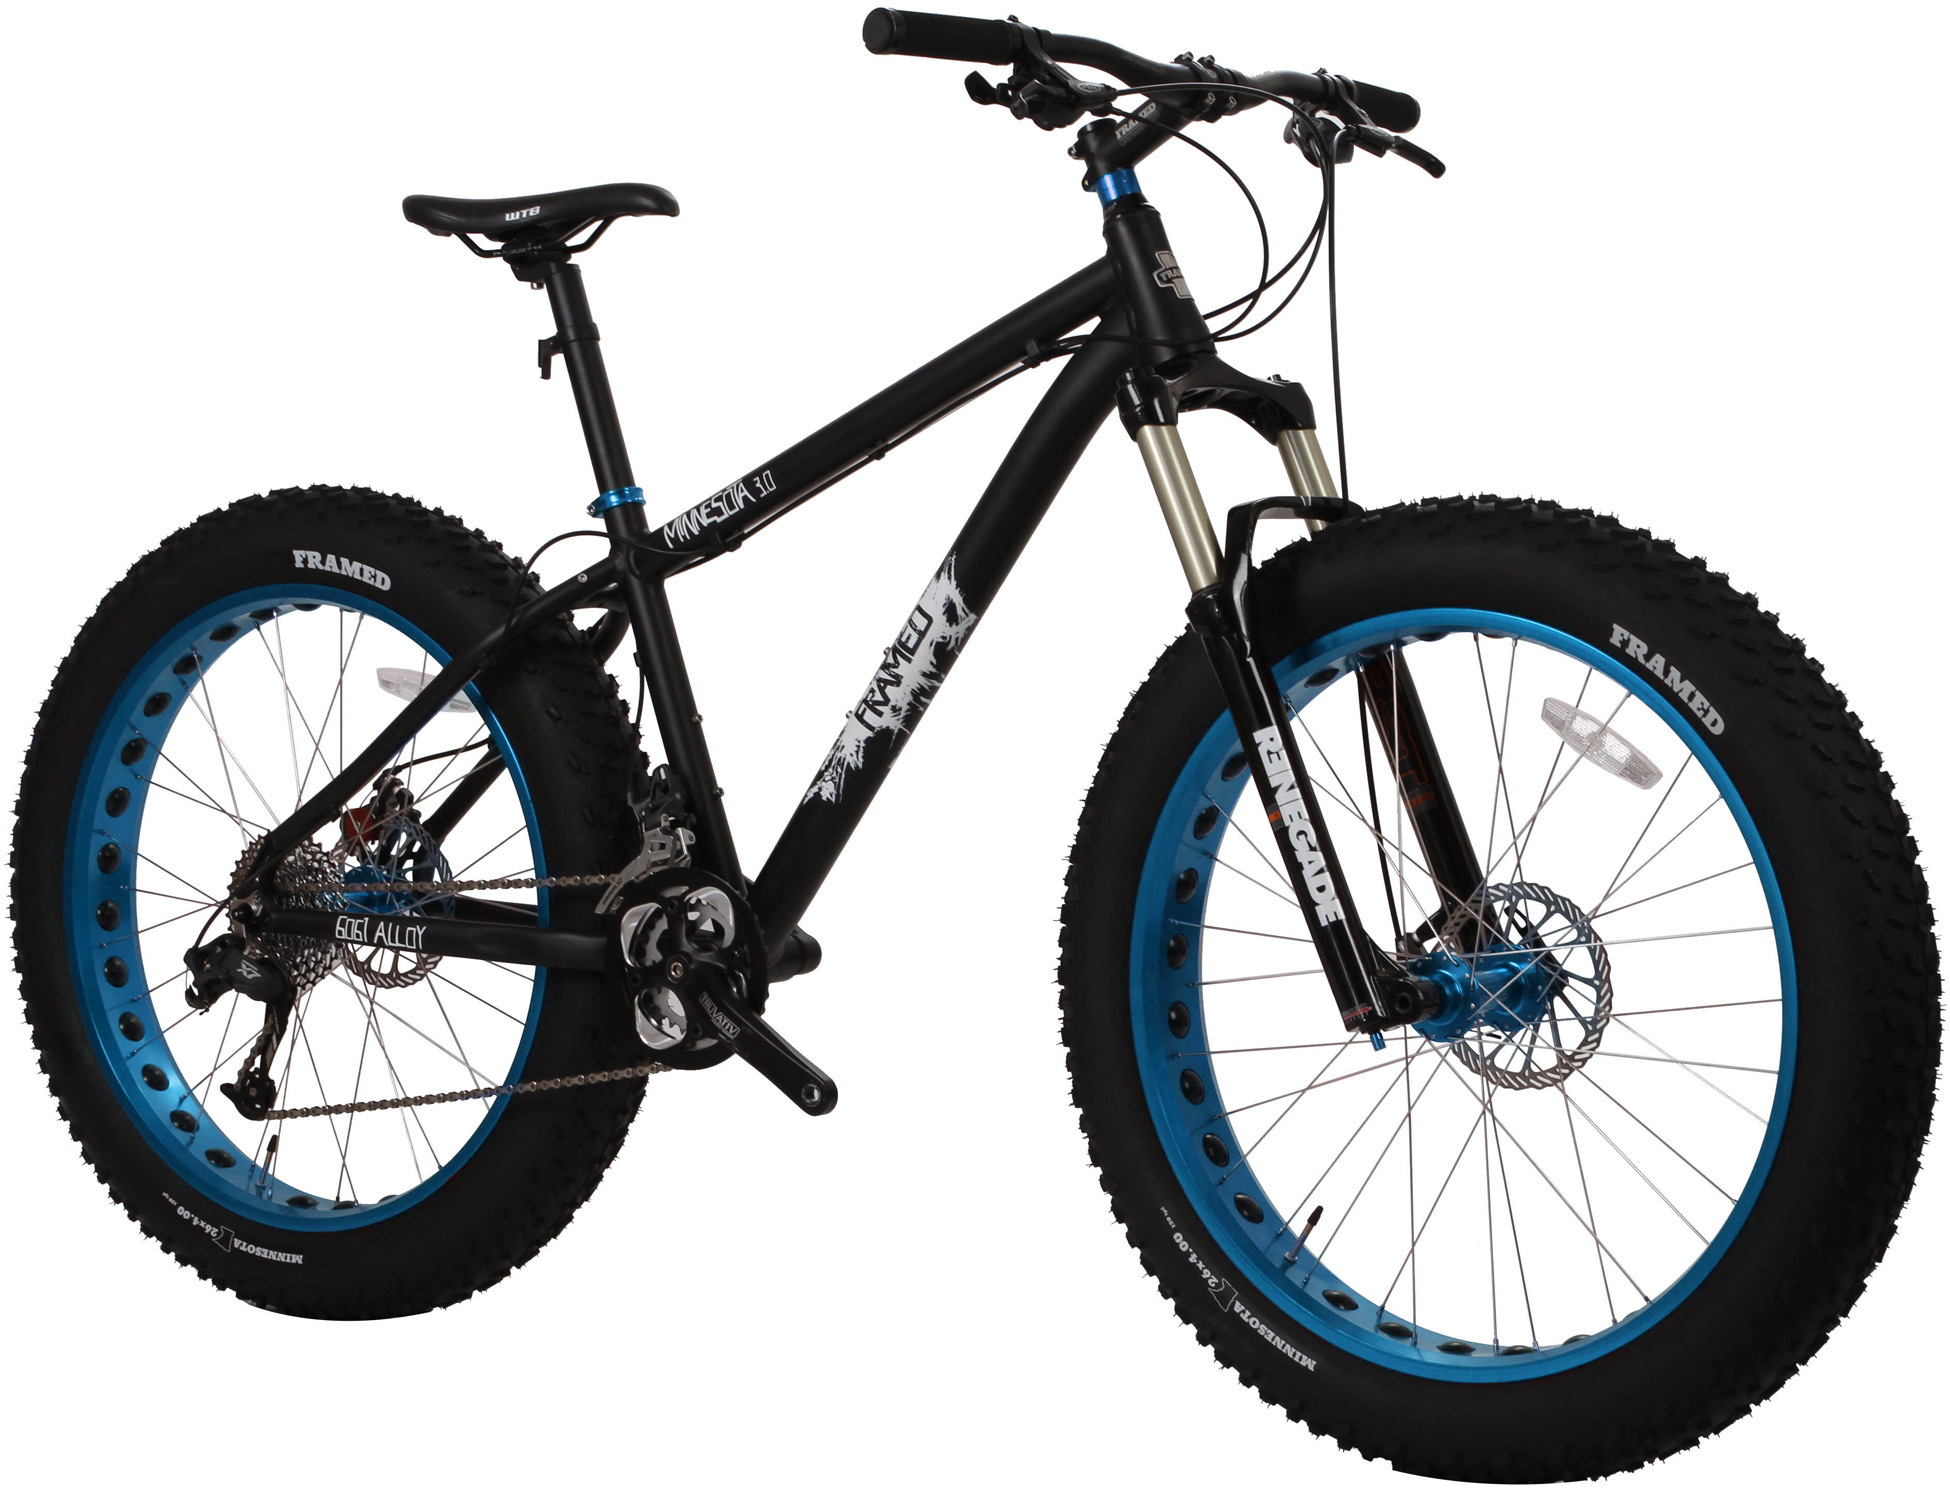 Minnesota 3.0 Fat Bike w/ RST Fork - $1,349.95 - Thrill On